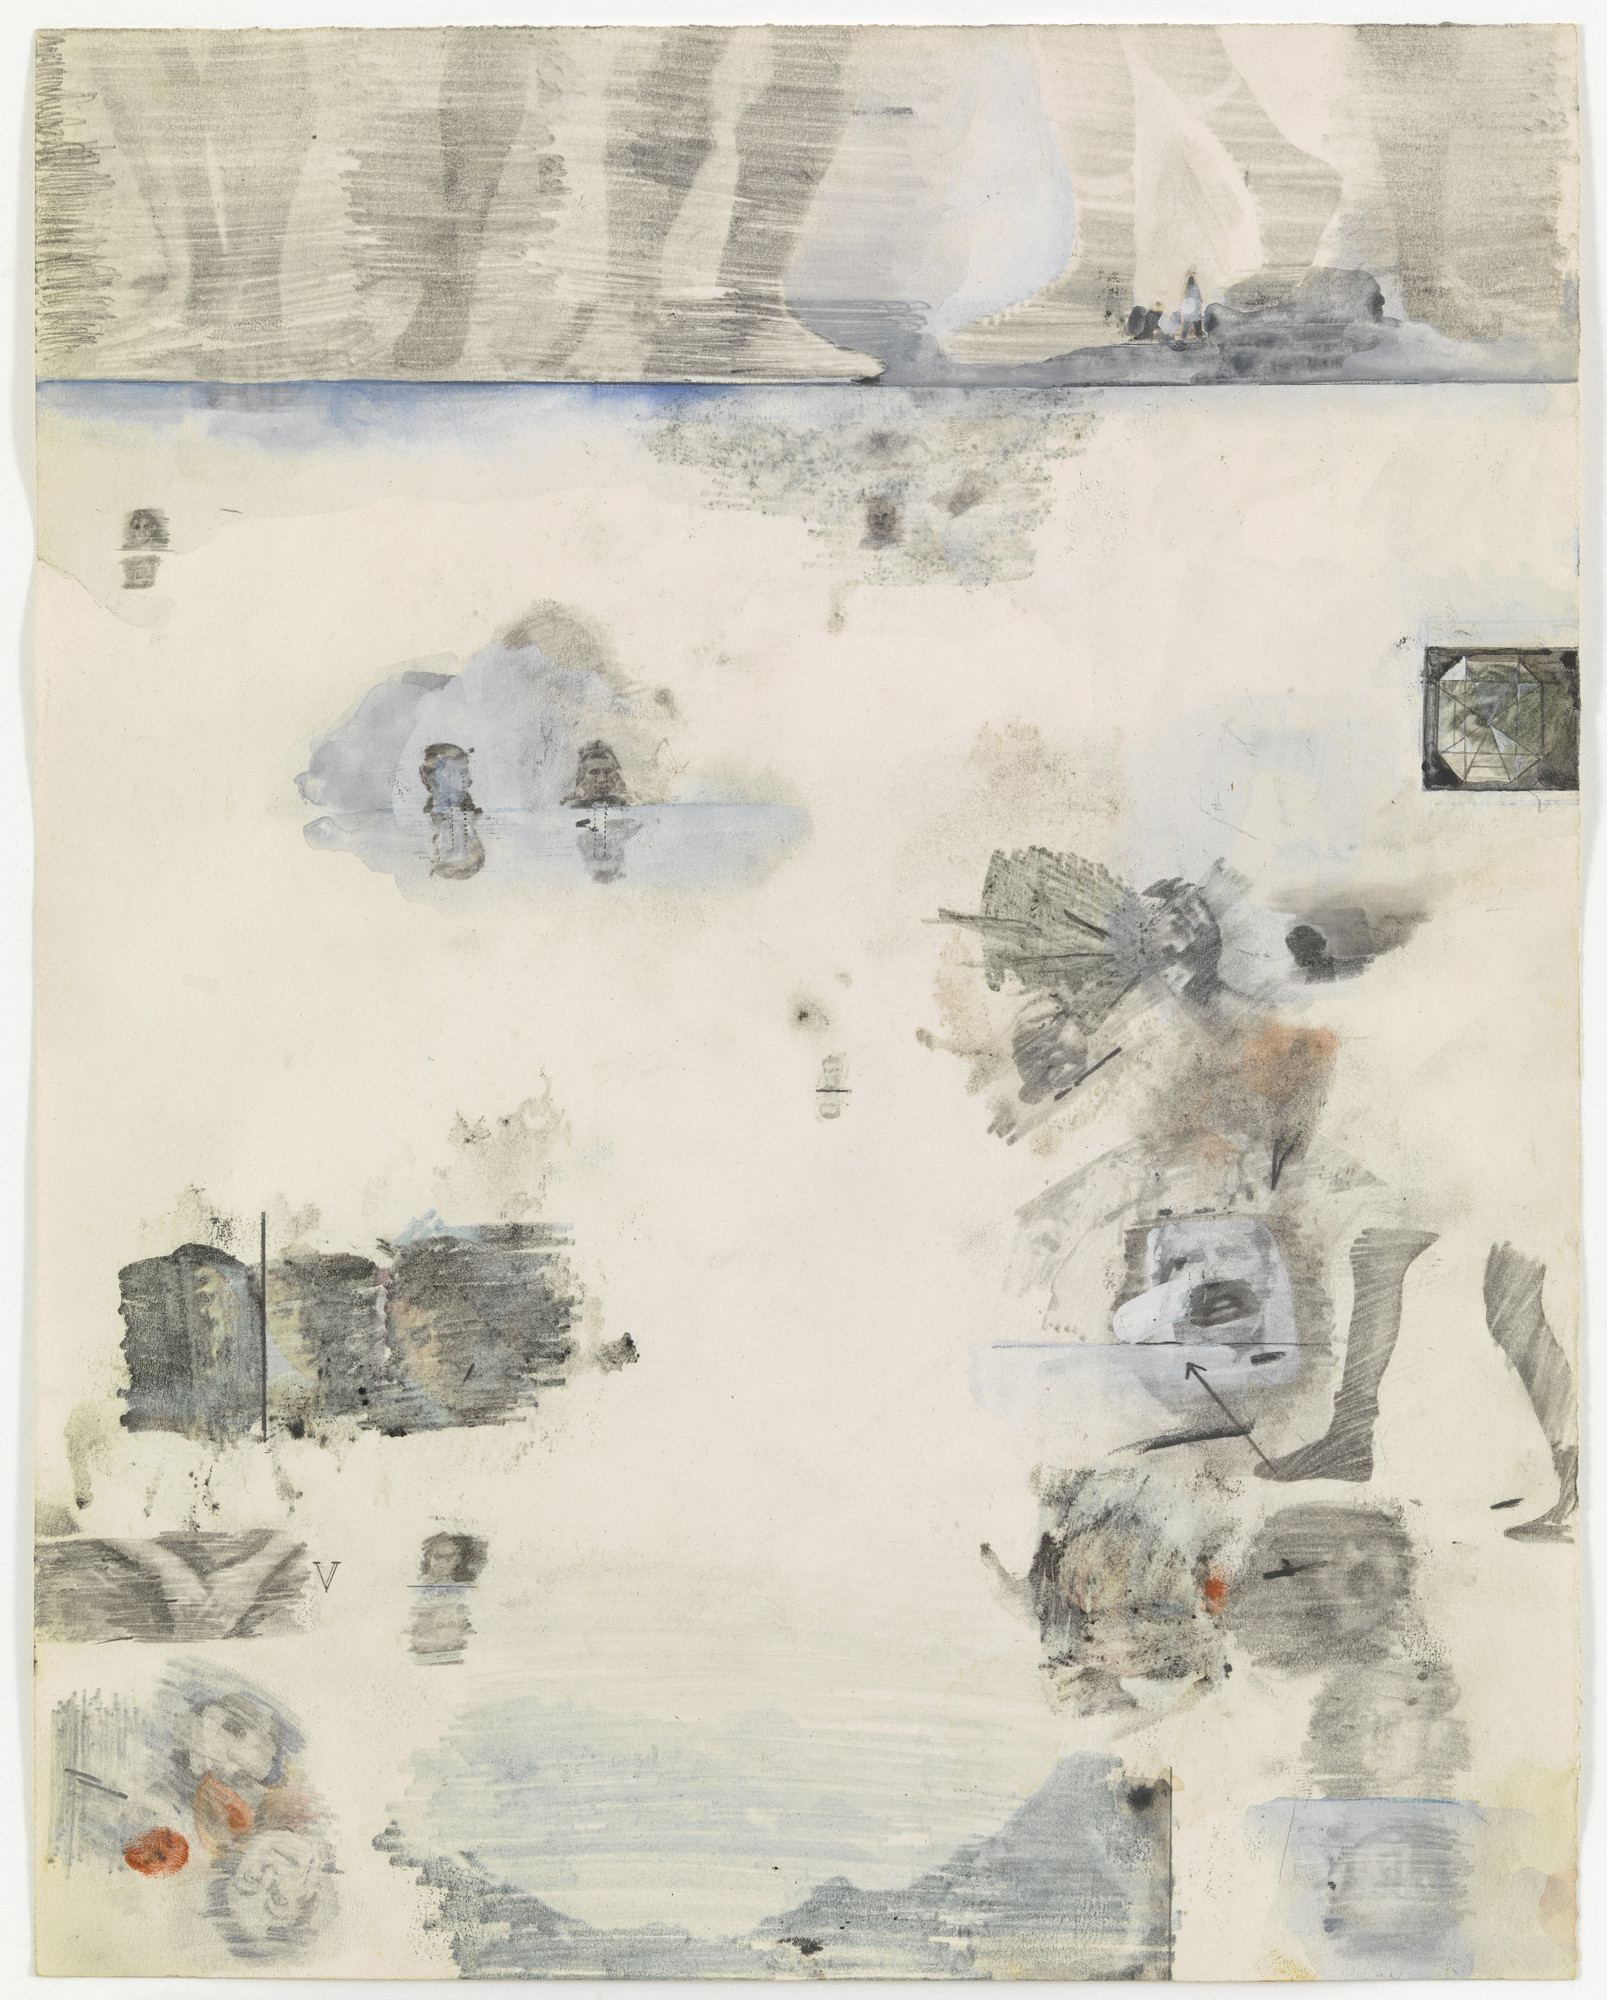 Robert Rauschenberg. Canto XXXII: Circle Nine, Cocytus, Compound Fraud: Round 1, Caina, Treacherous to Kin; Round 2, Antenora, Treacherous to Country from the series Thirty-Four Illustrations for Dante's Inferno. (1959-60)